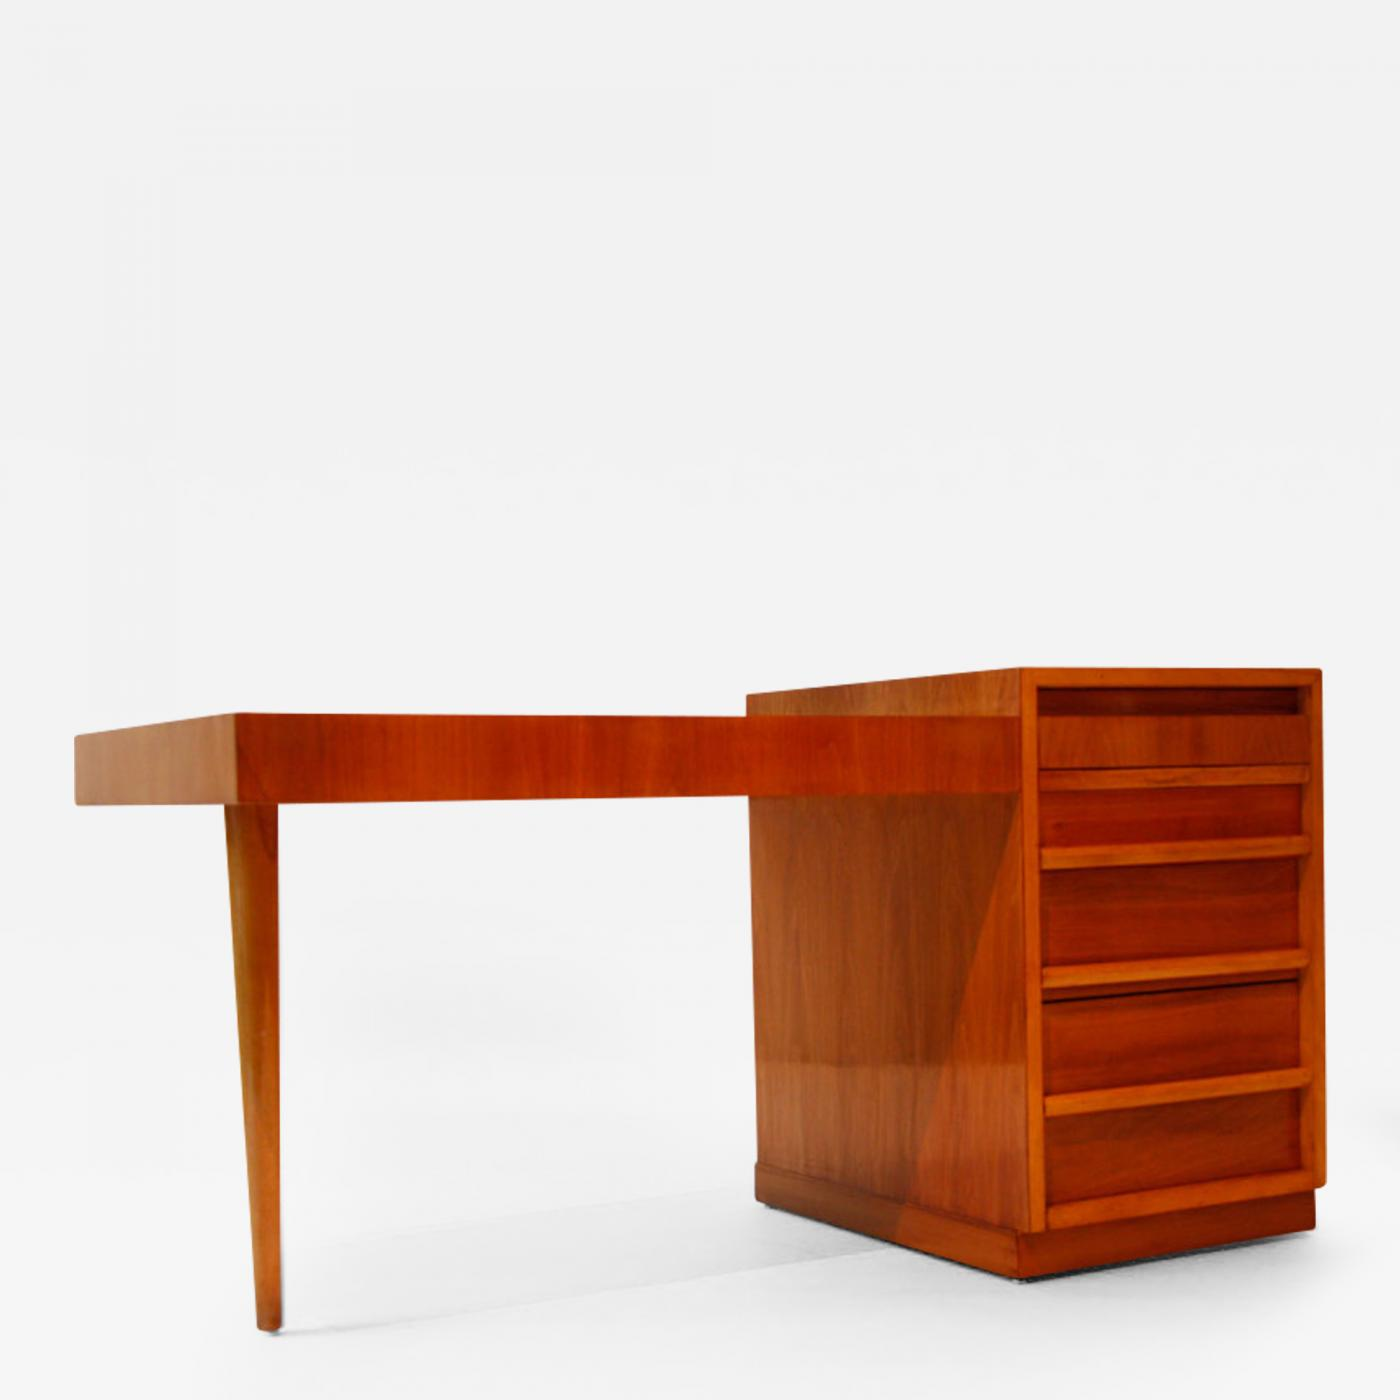 Desks With Drawers Th Robsjohn Gibbings Cherry Wood Desk With Drawers